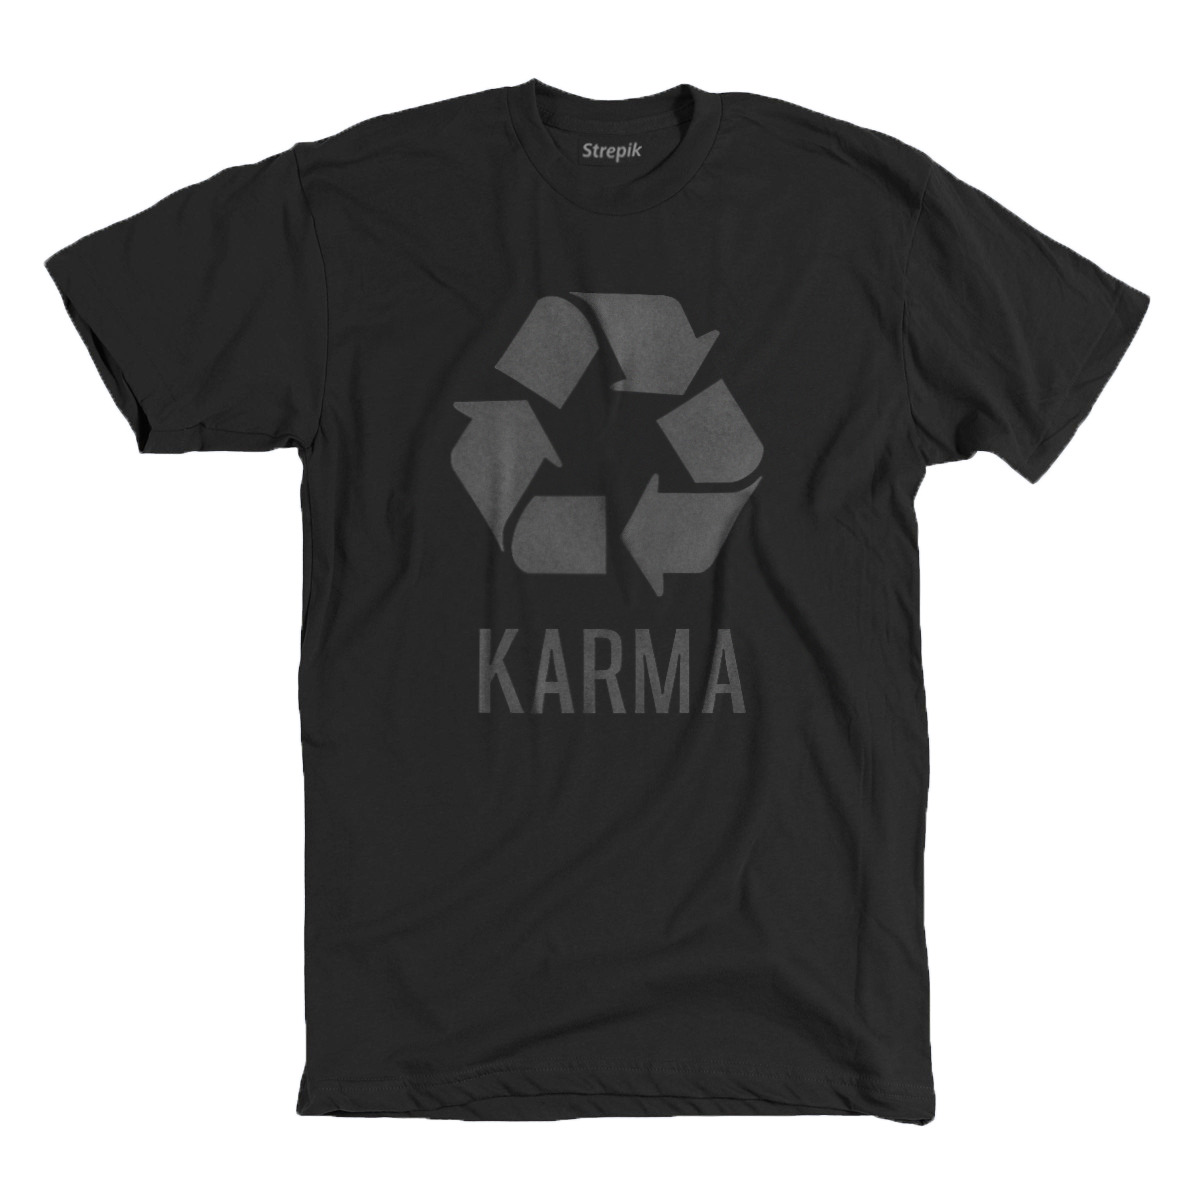 lovequotesrus:  Strepik's Karma Tee$24 - Ships internationally